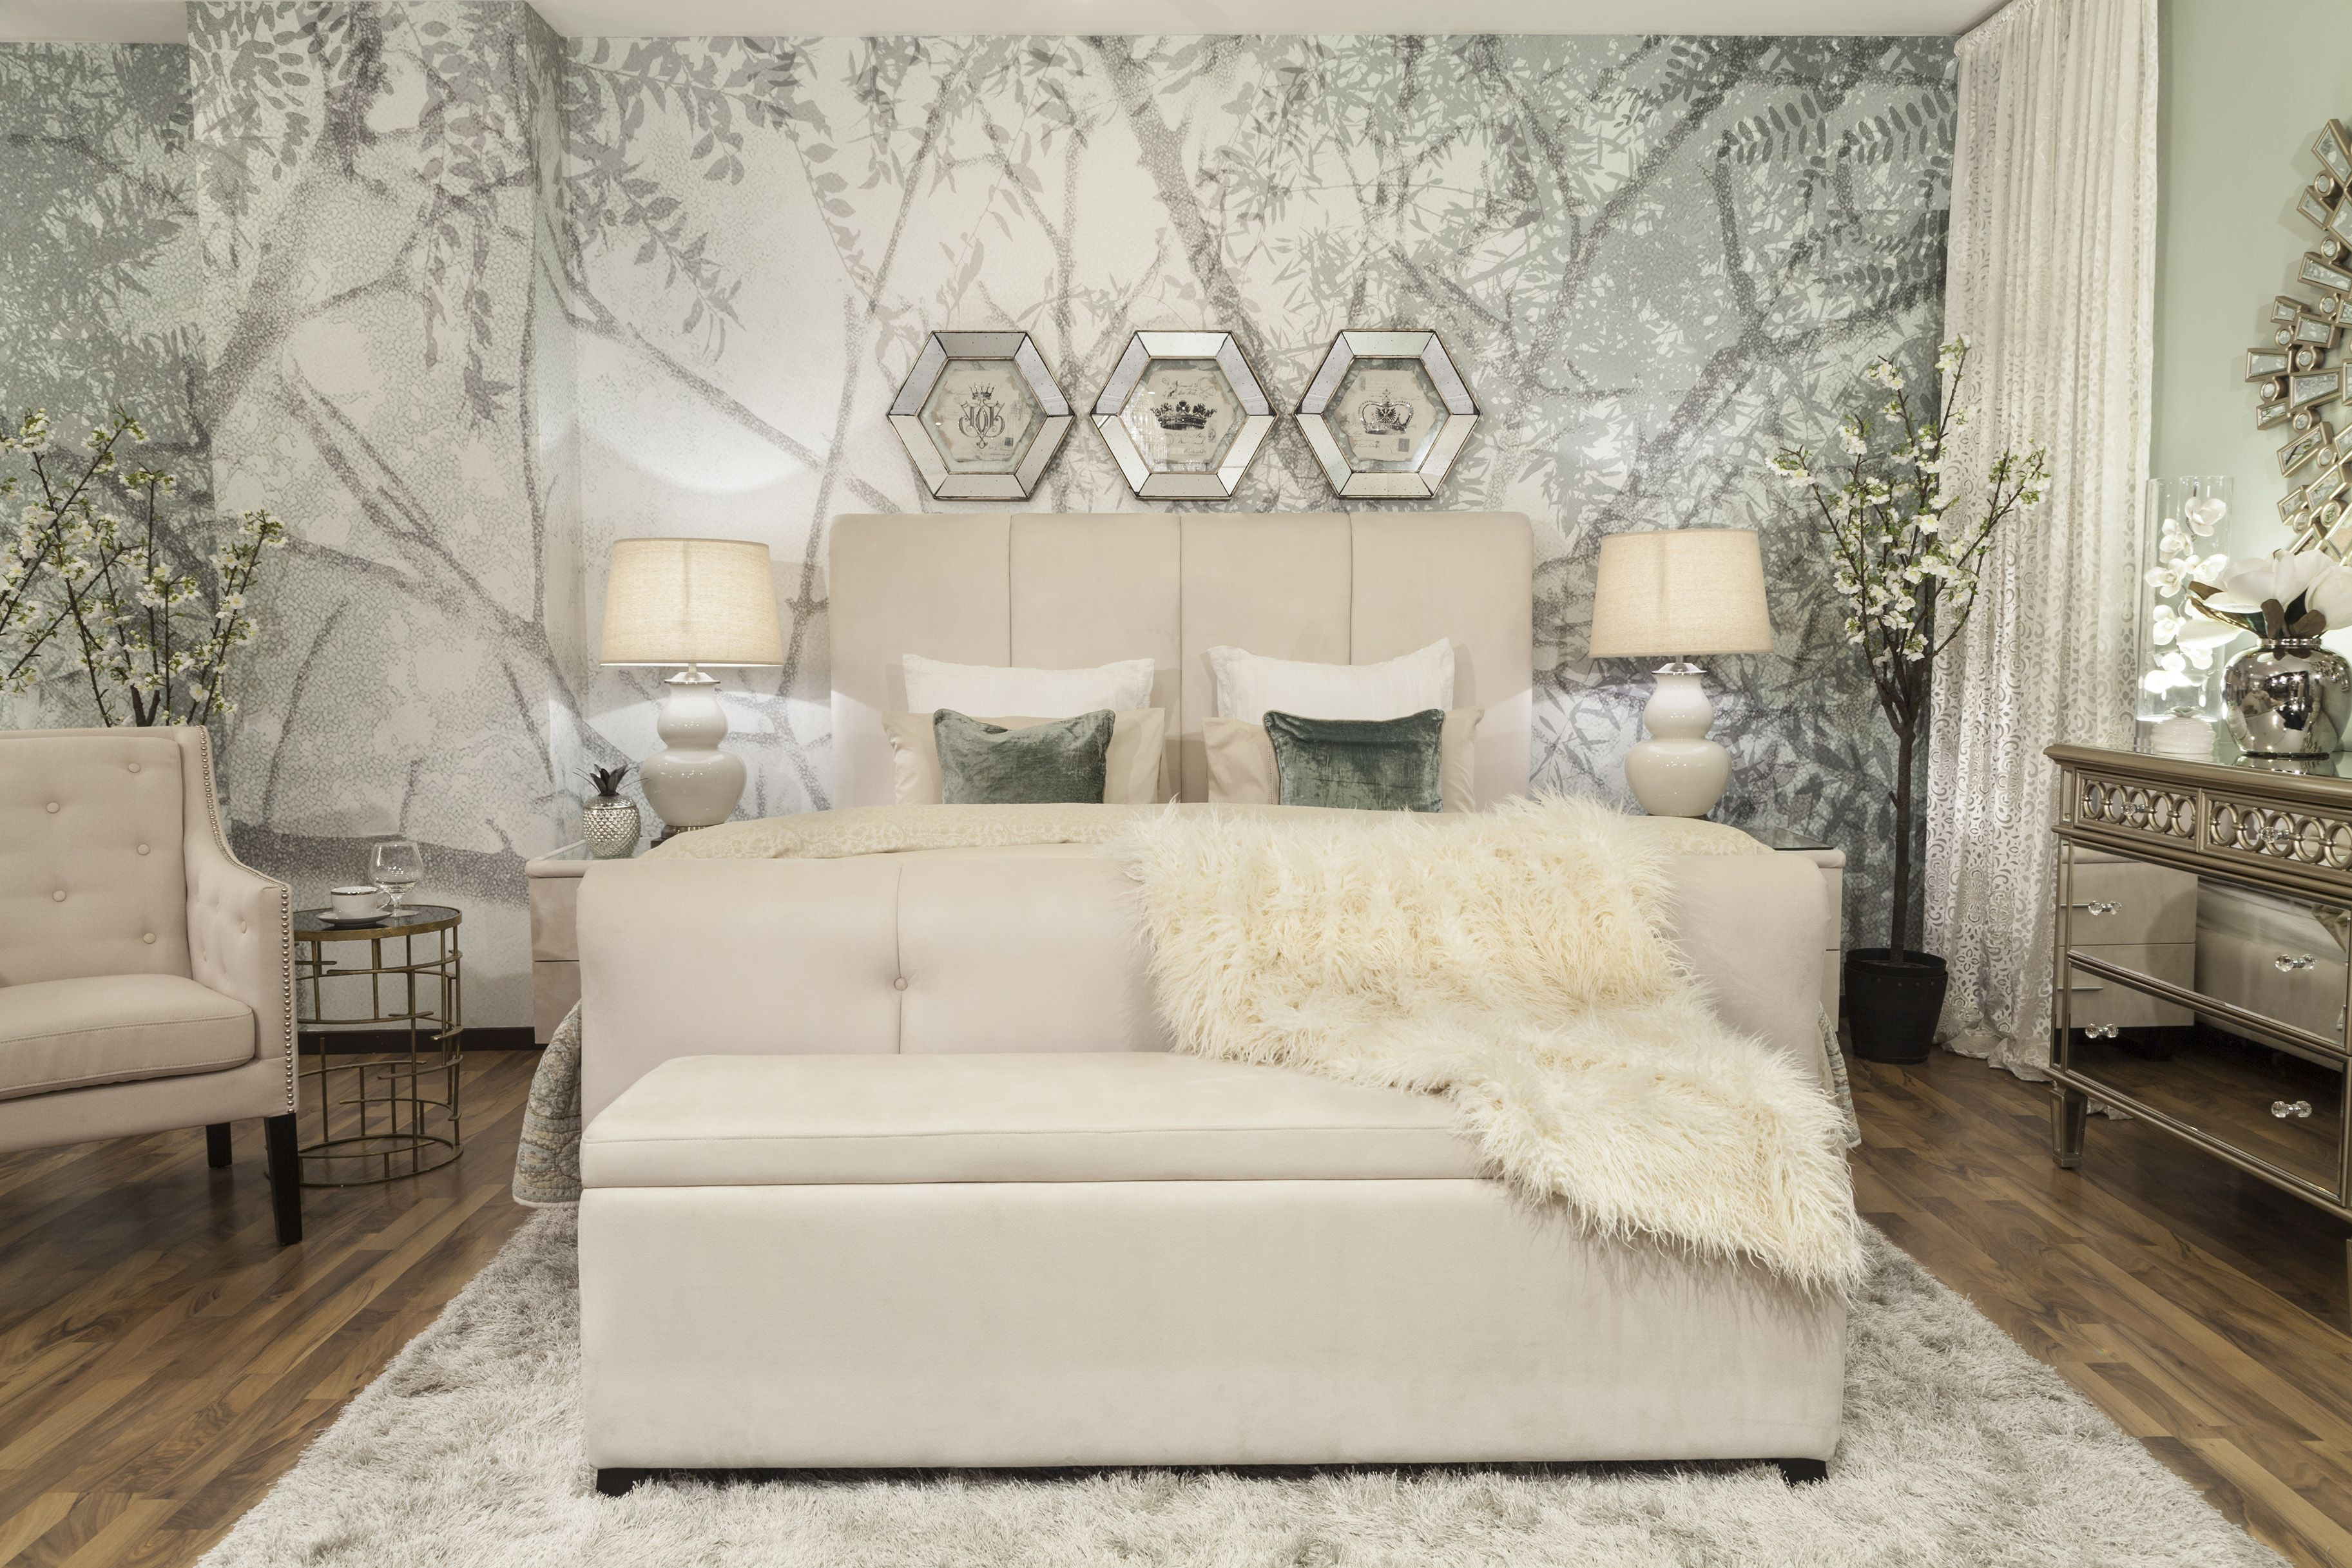 Bedroom Opulent Leafy 'Sunshade' wallpaper in soothing